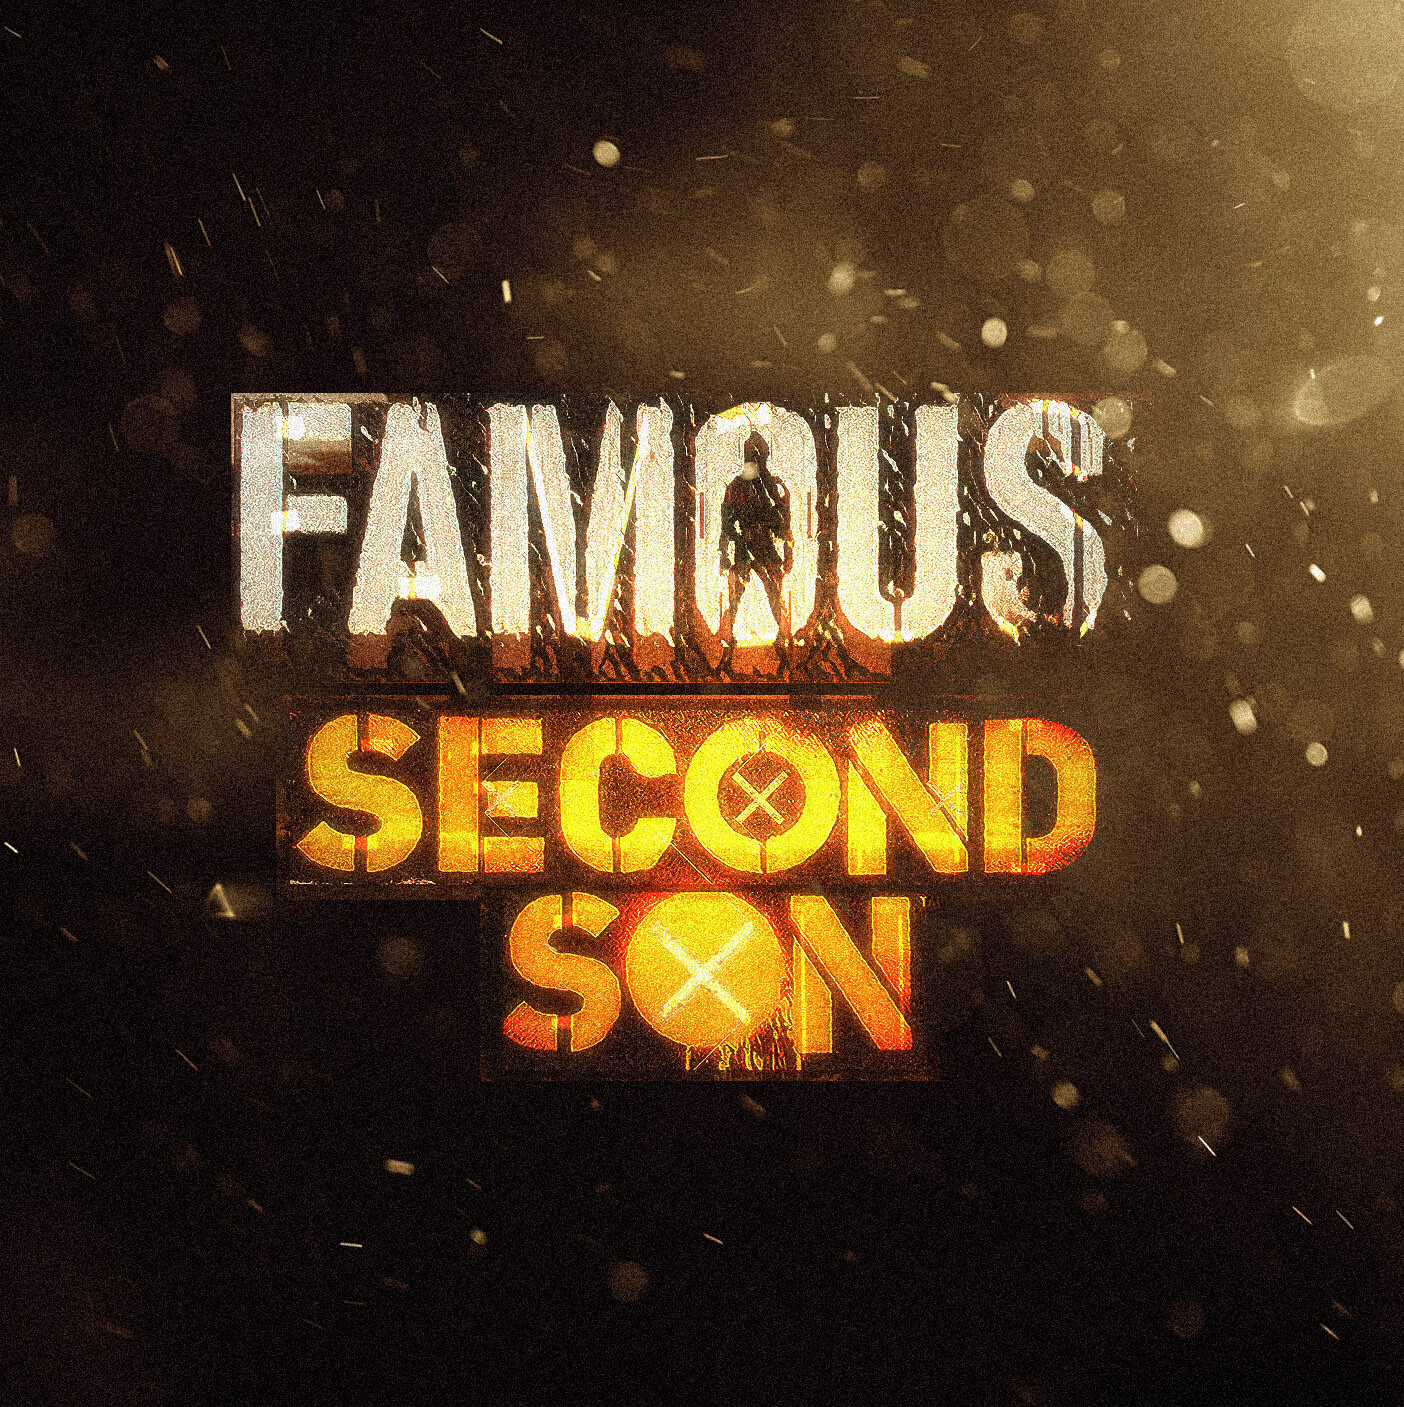 Not FAMOUS SECOND SON